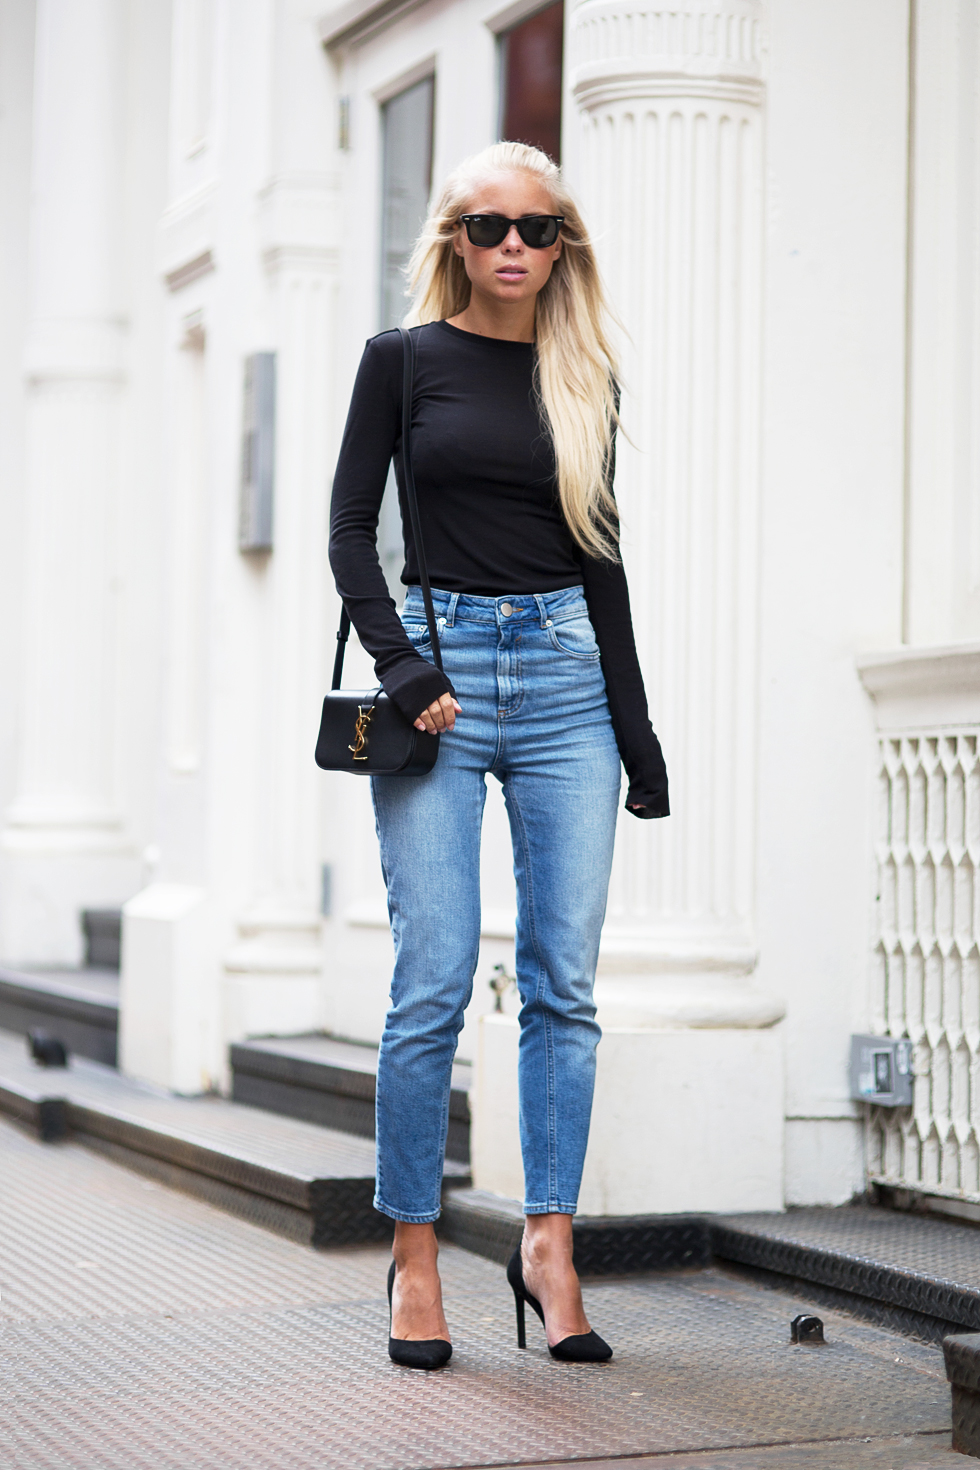 Just The Design: Victoria Tornegren is wearing a black long sleeved H&M top with a pair of light wash Asos jeans, NLY heels and a YSL sidebag